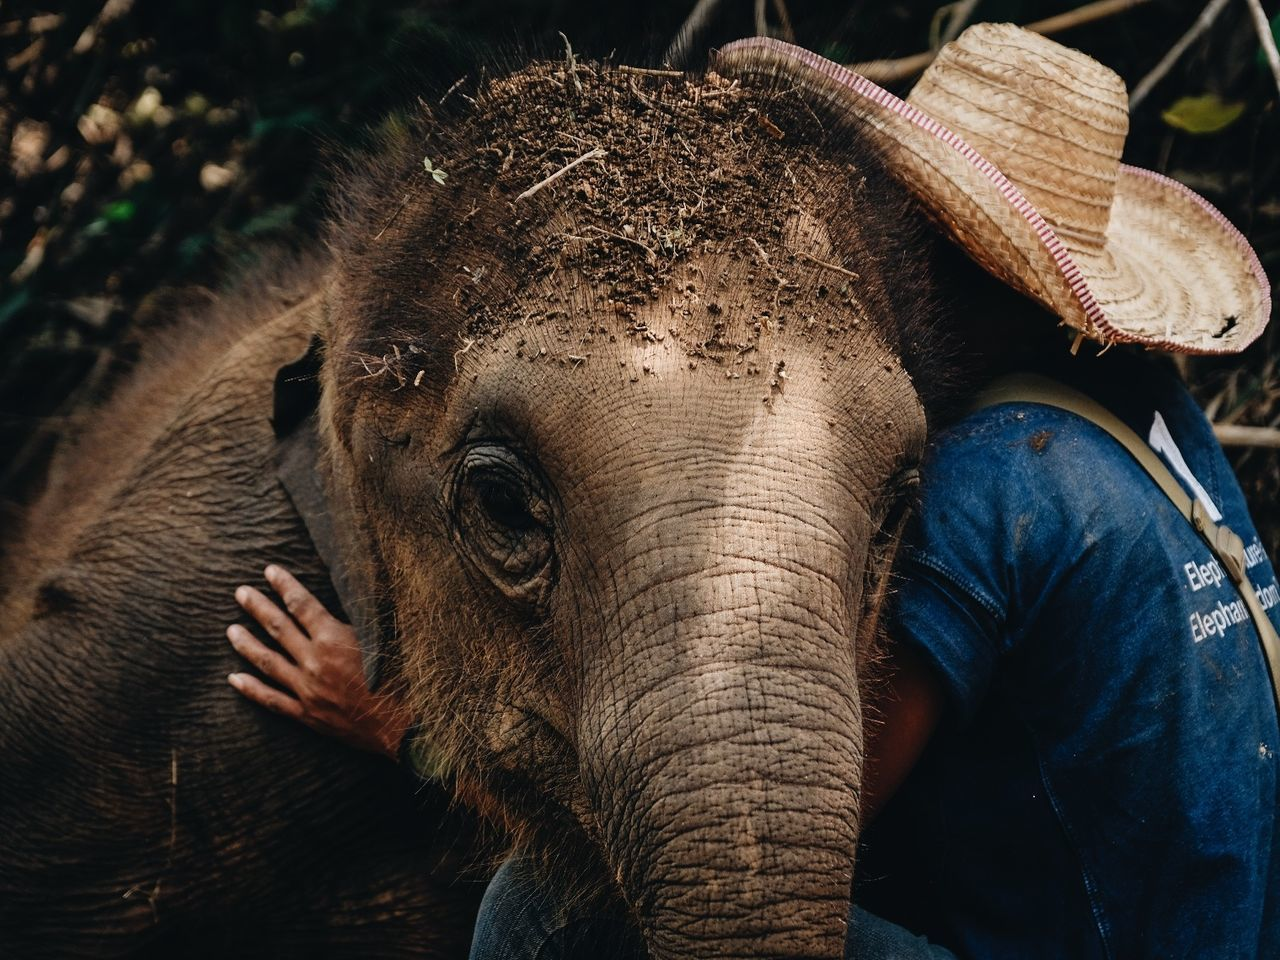 Close-up of peron hugging elephant